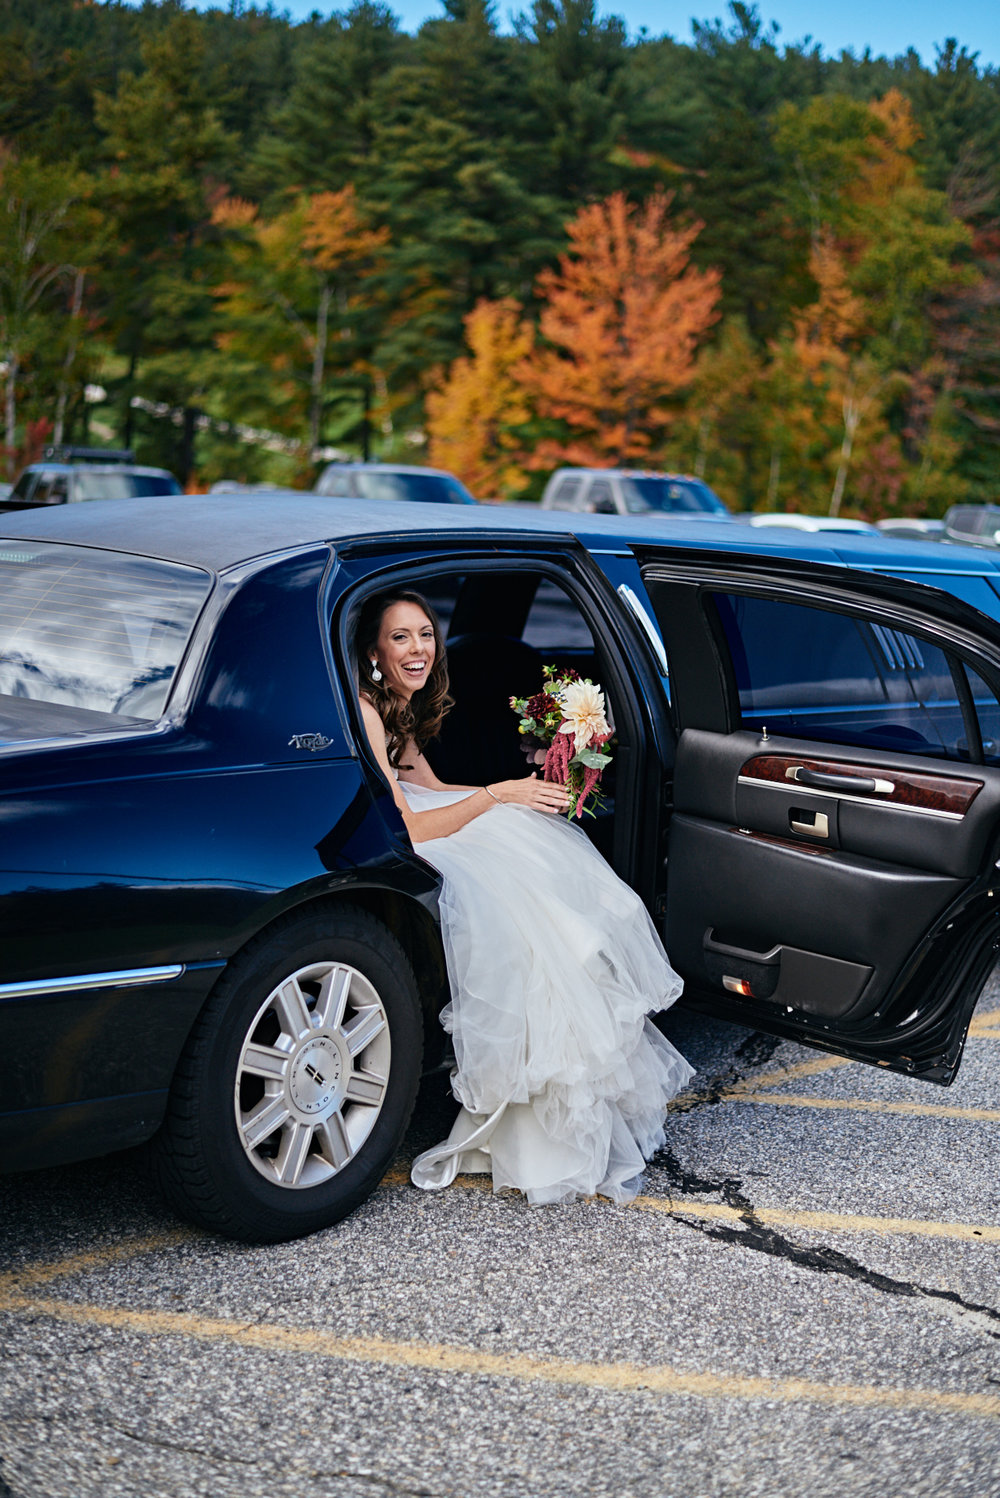 Wedding Photography by Cate Bligh, the bride arrives at Mount Sunapee Resort in Newbury, NH with her father